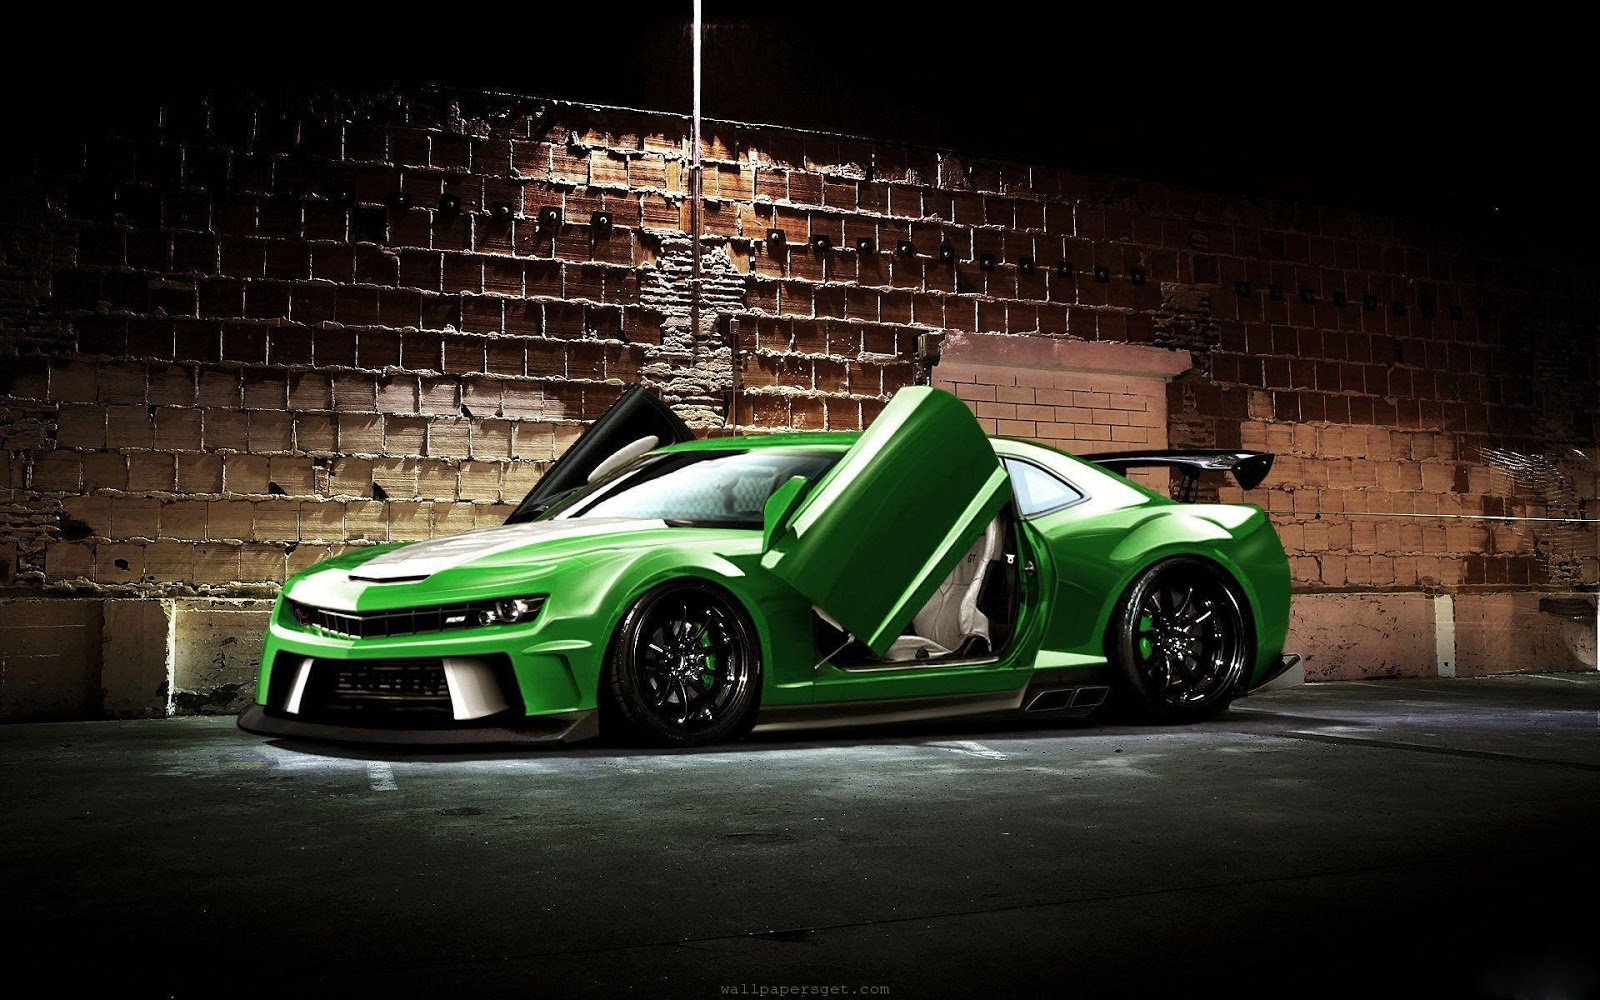 https://4.bp.blogspot.com/-A8m-a76vNzs/UPh9IttqRPI/AAAAAAAAPK4/HznQRX3MxM4/s1600/green-sports-car-modified-car-1200x1920.jpg